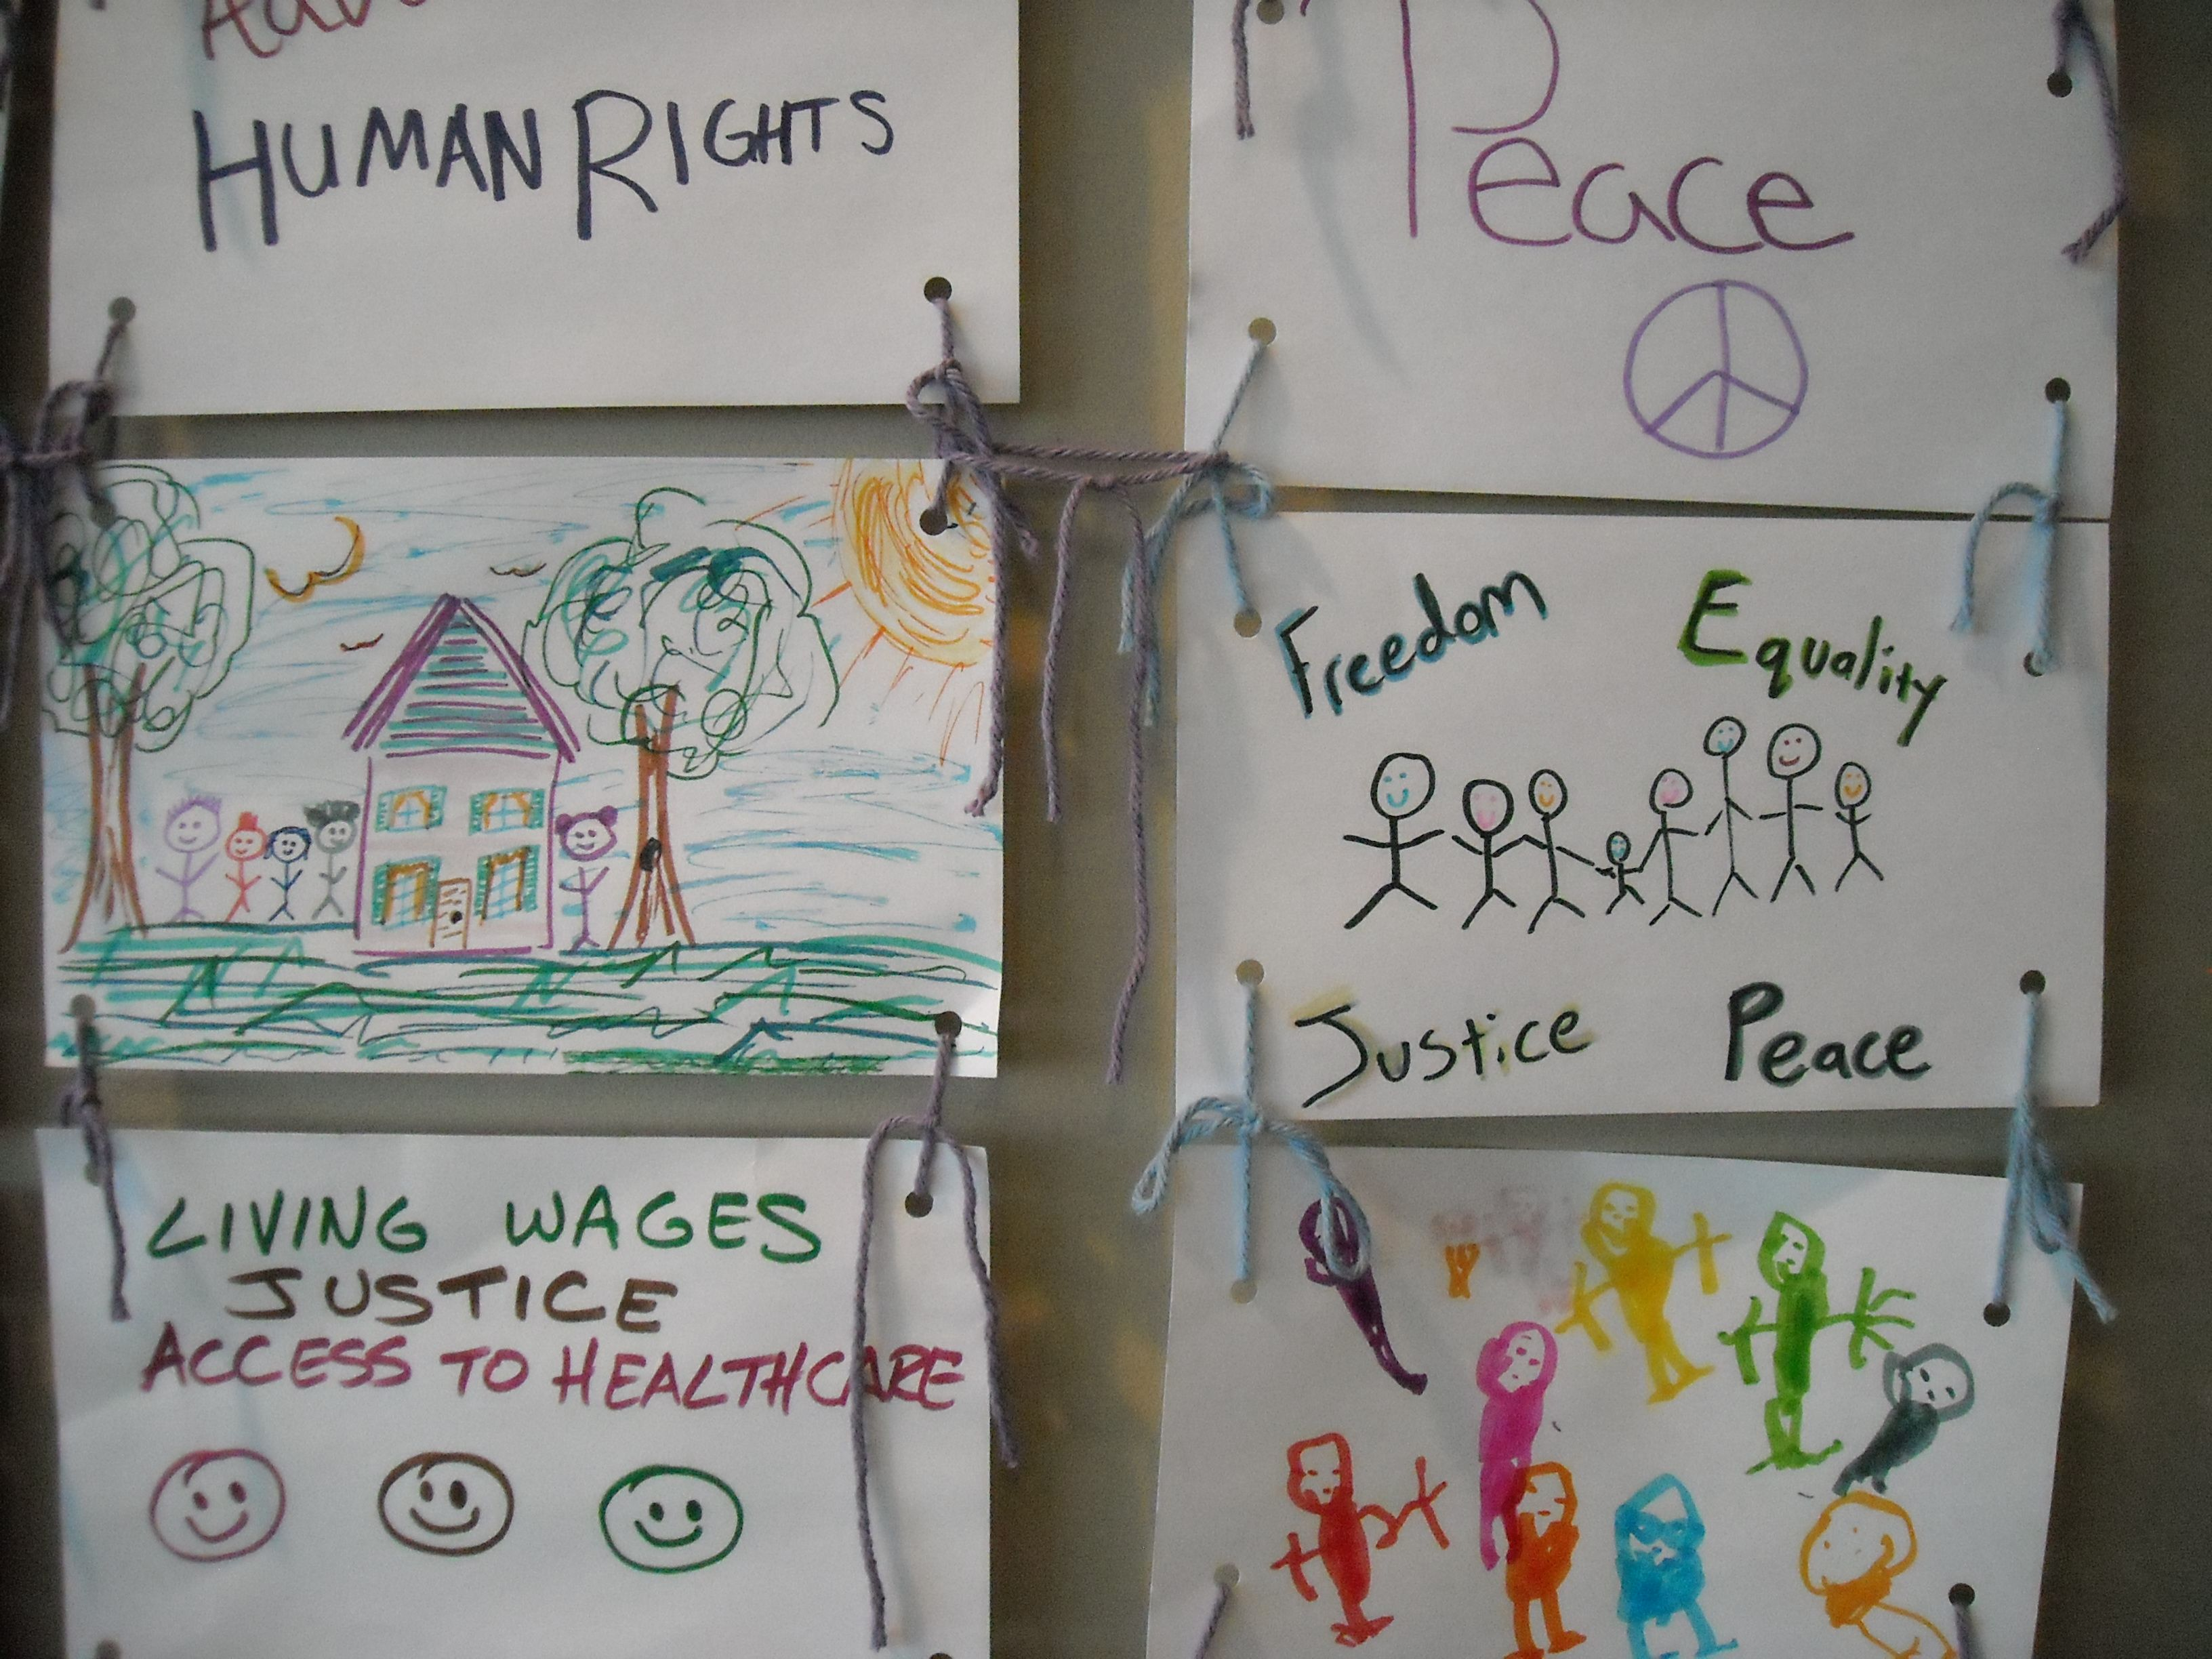 10 Things To Do With Your Kids On Human Rights Day Dec